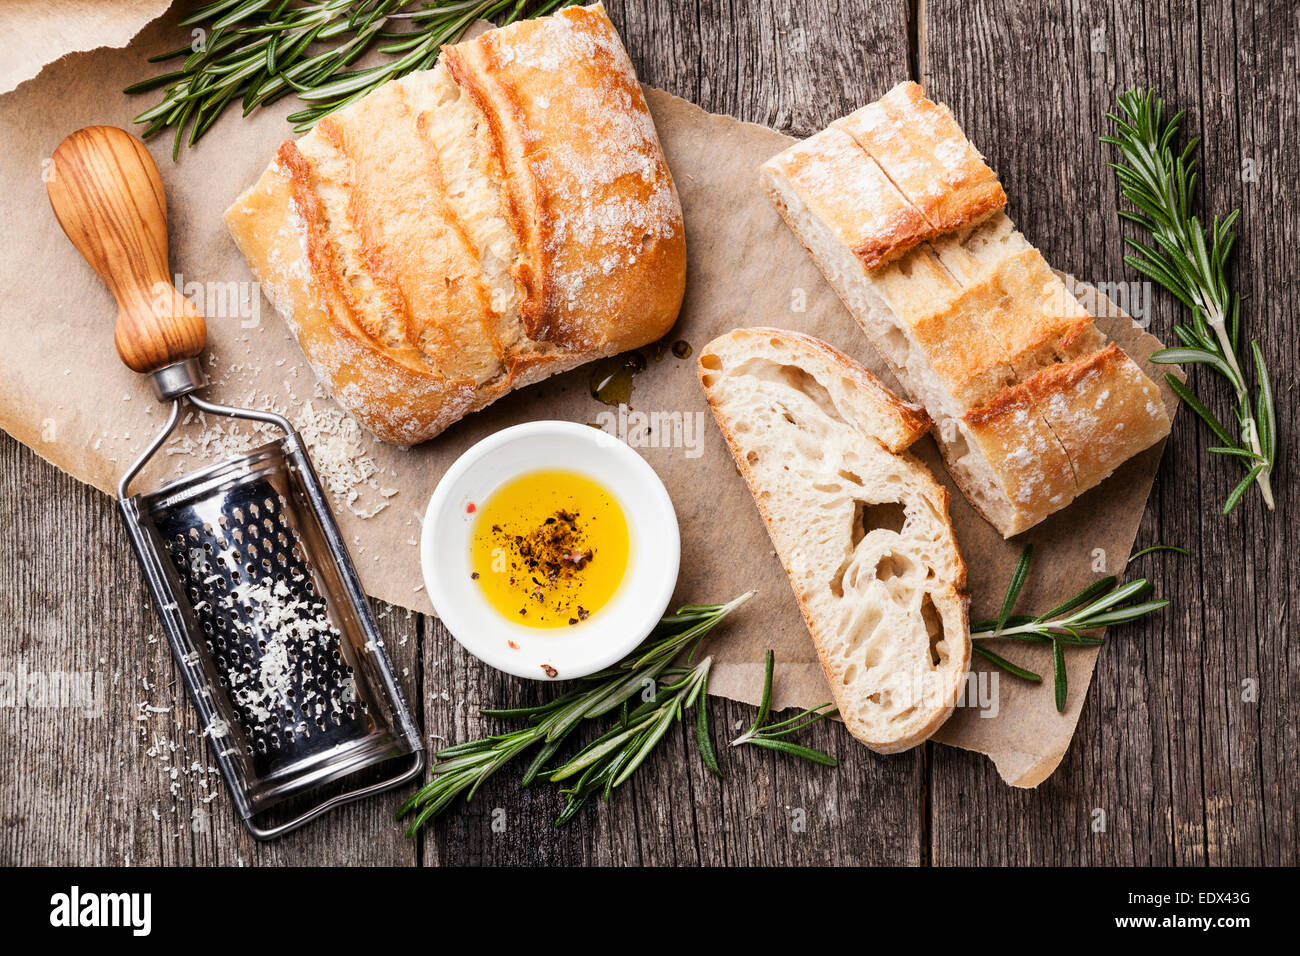 Sliced bread Ciabatta and extra virgin Olive oil on wooden background - Stock Image